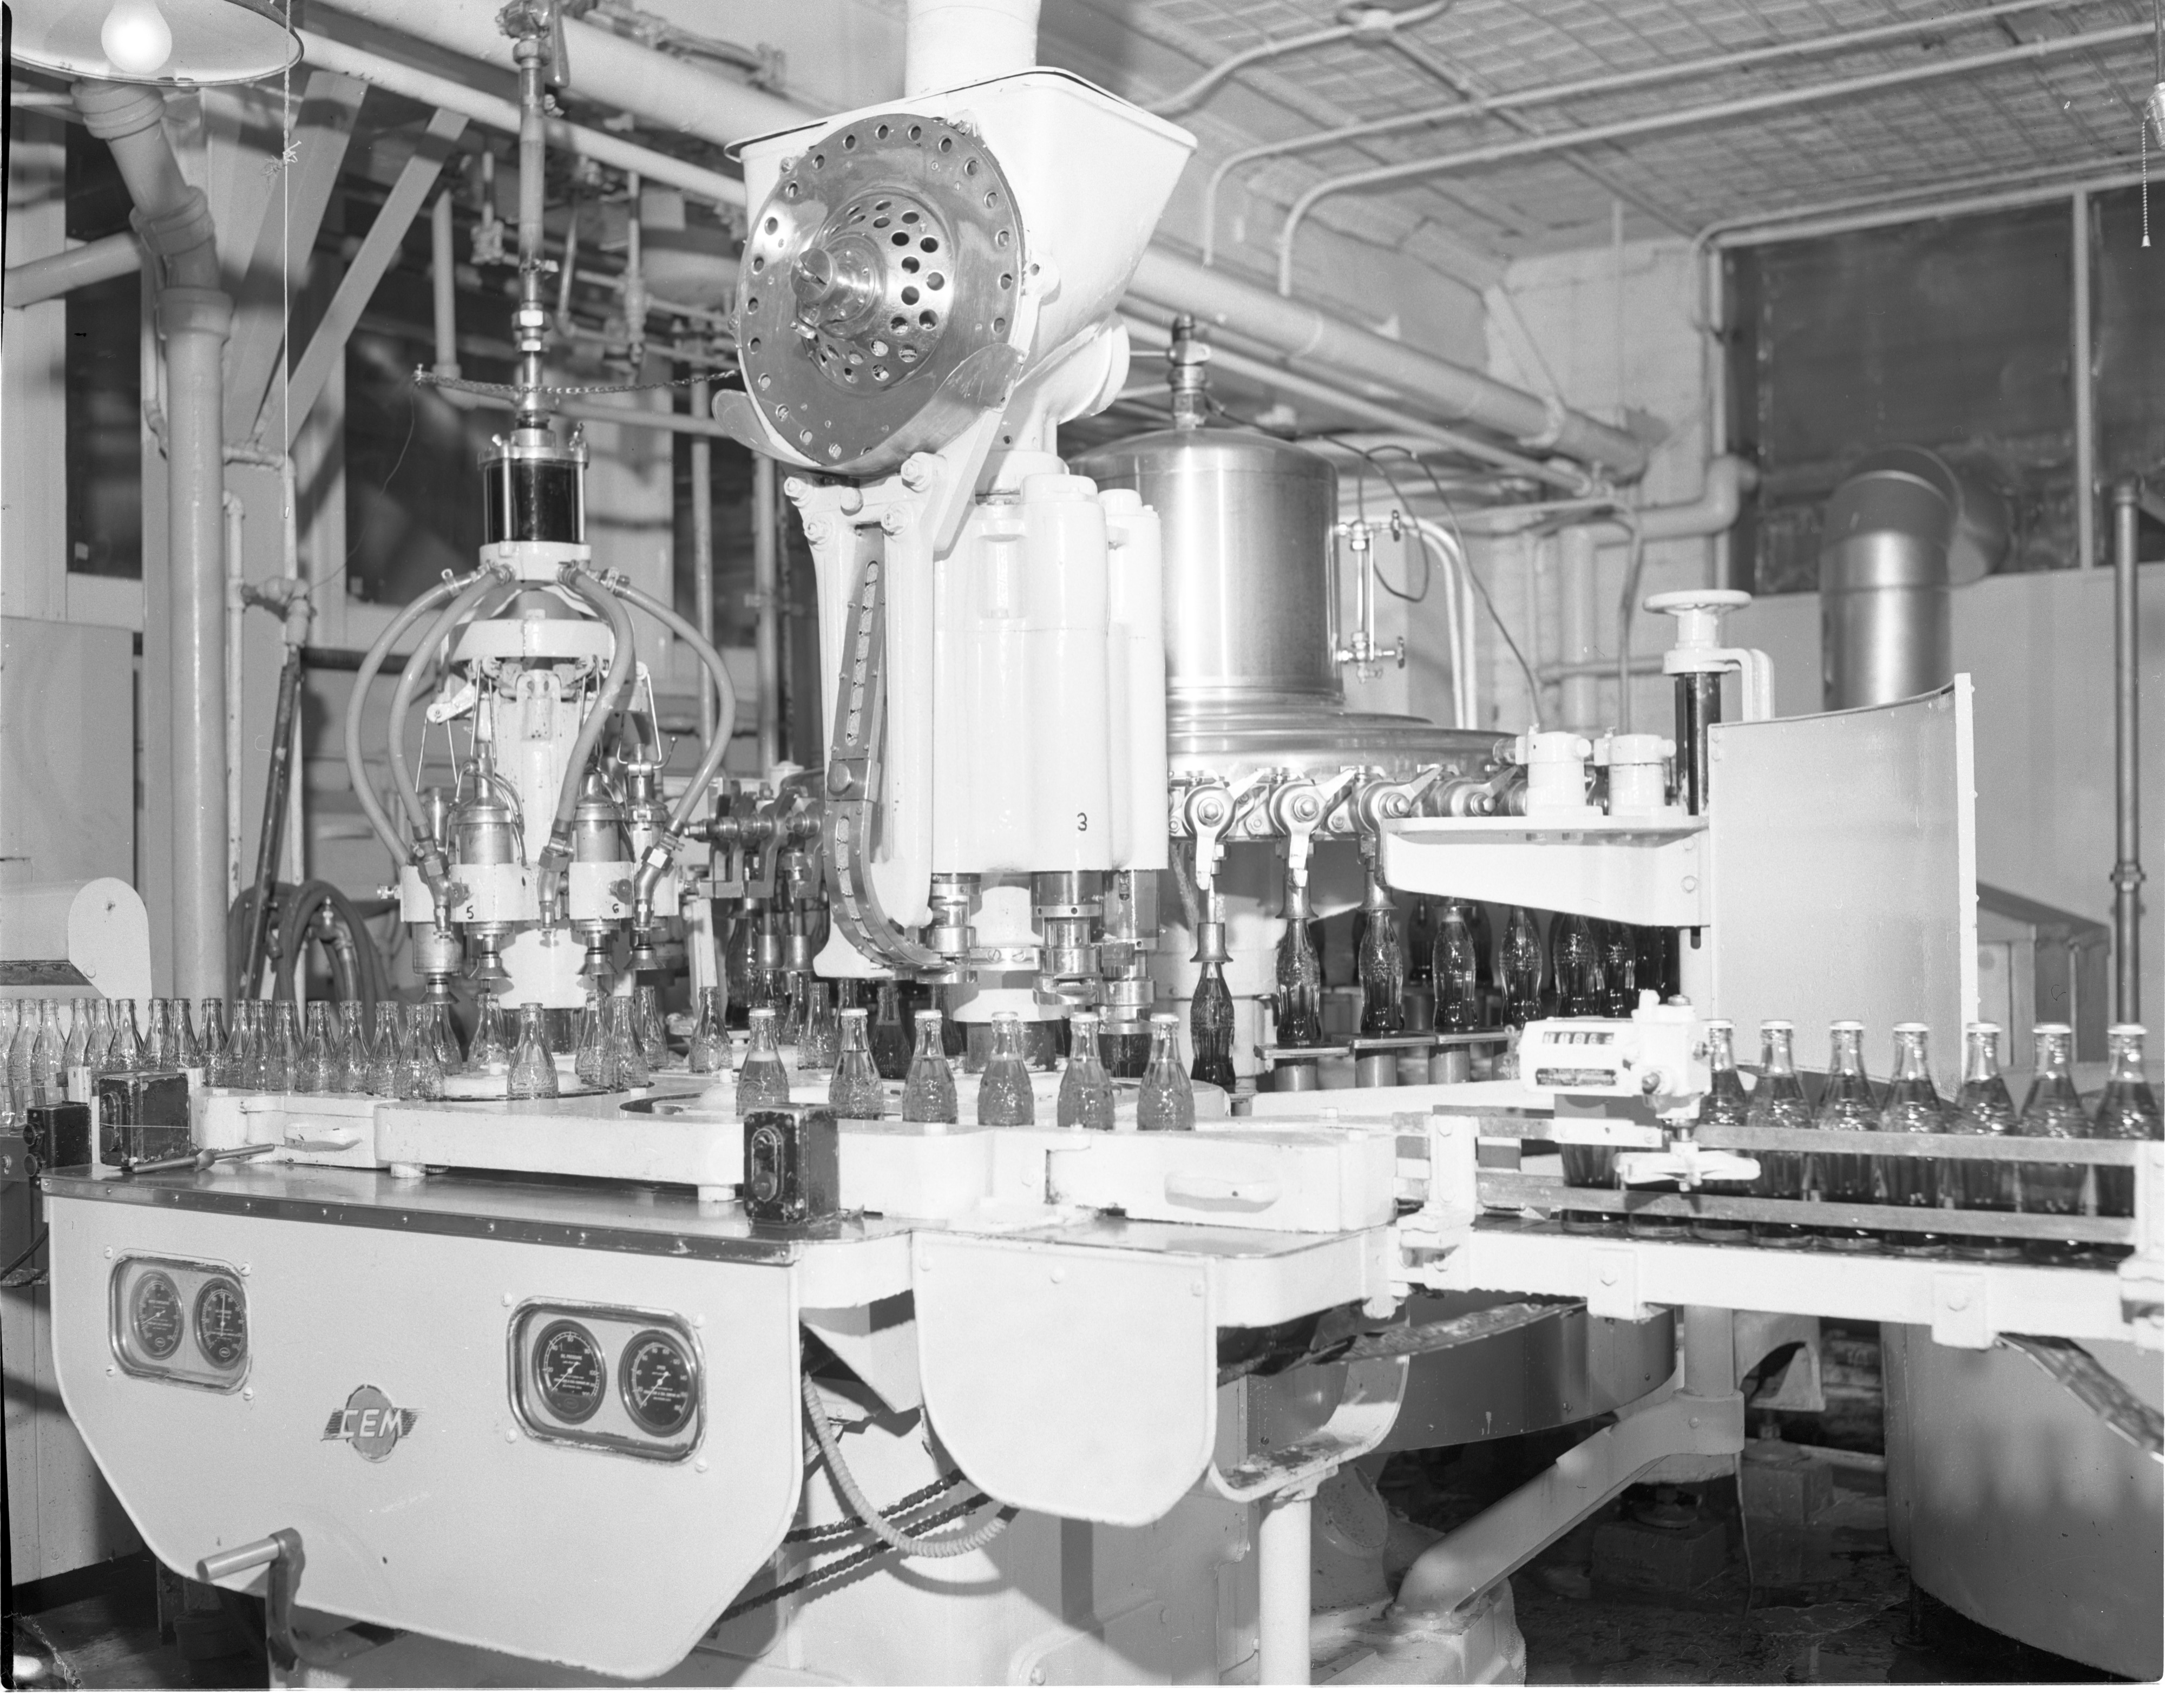 Coca-Cola Bottles Are Filled By A Machine At The Kleis Beverage Co., January 1956 image